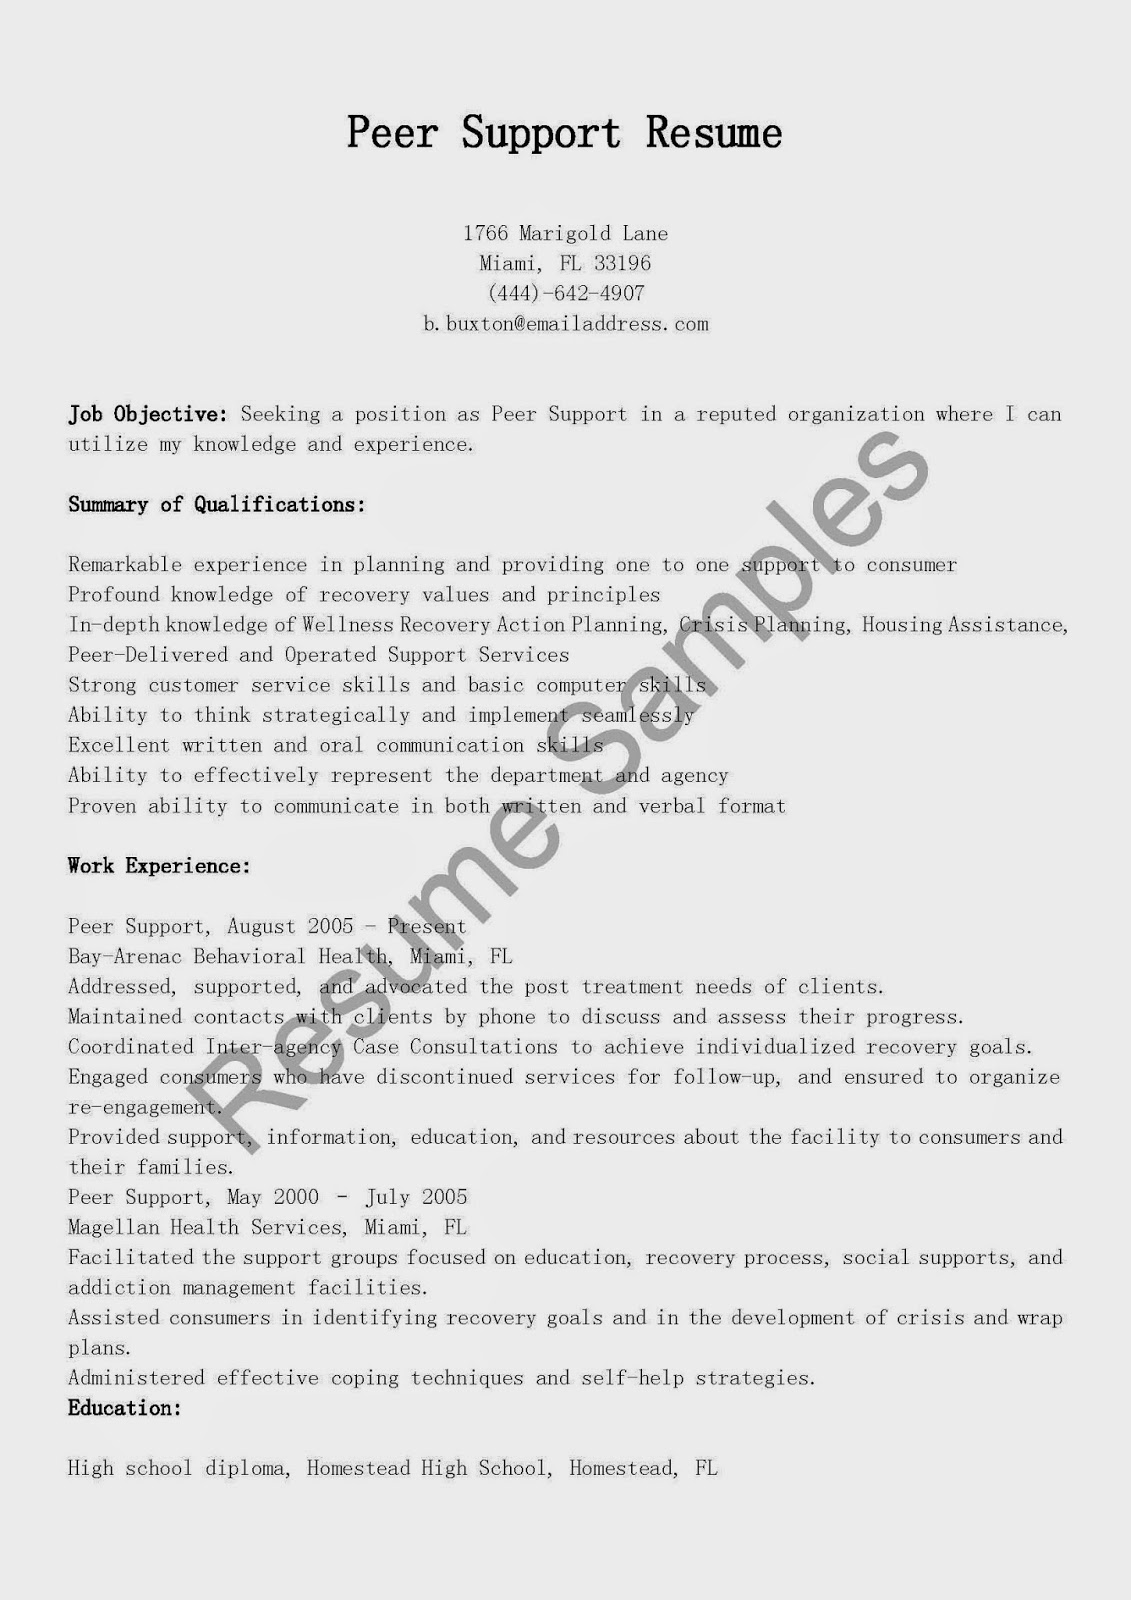 Resume Samples Peer Support Resume Sample